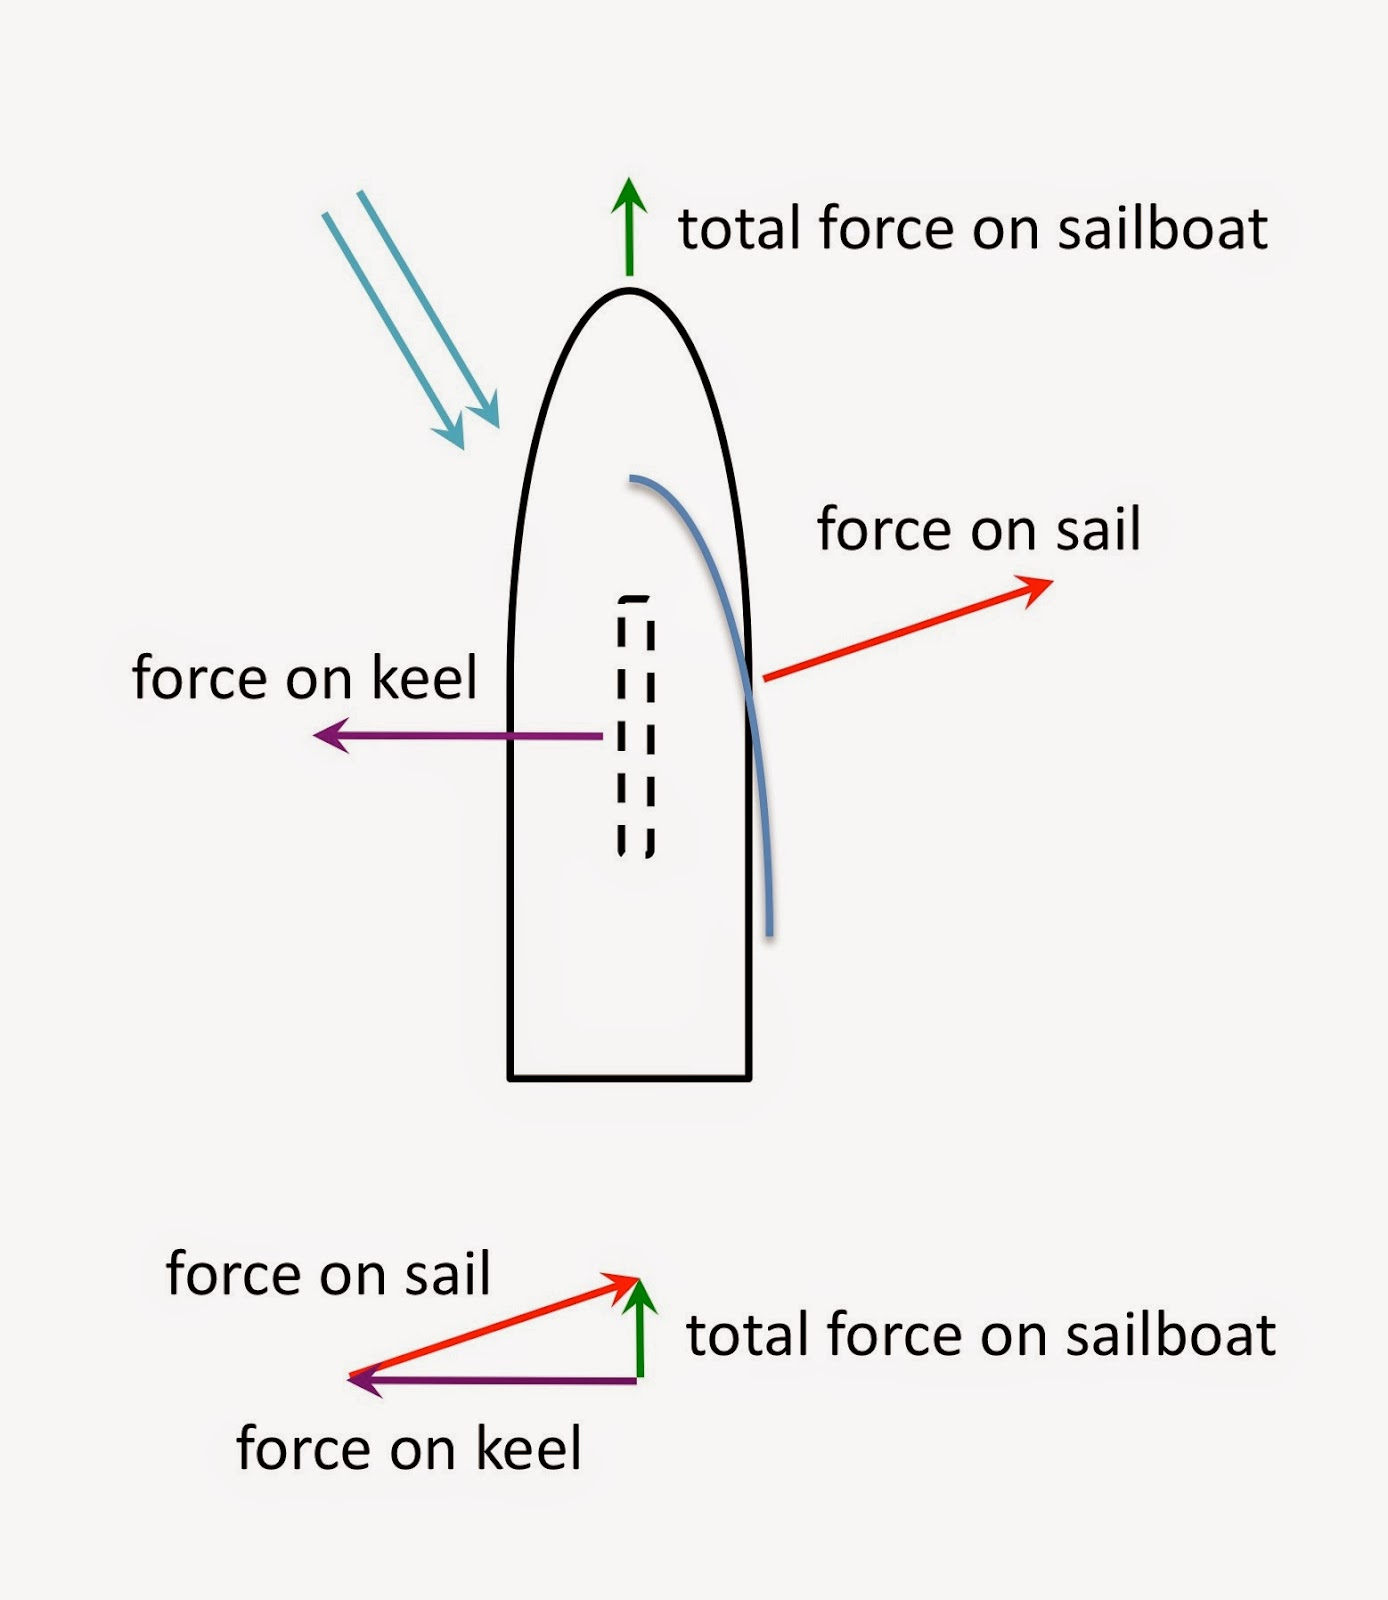 forces acting on a sailboat cancel each other such that the total force  moves the sailboat forward  the downward pointing keel is outlined by the  dashed